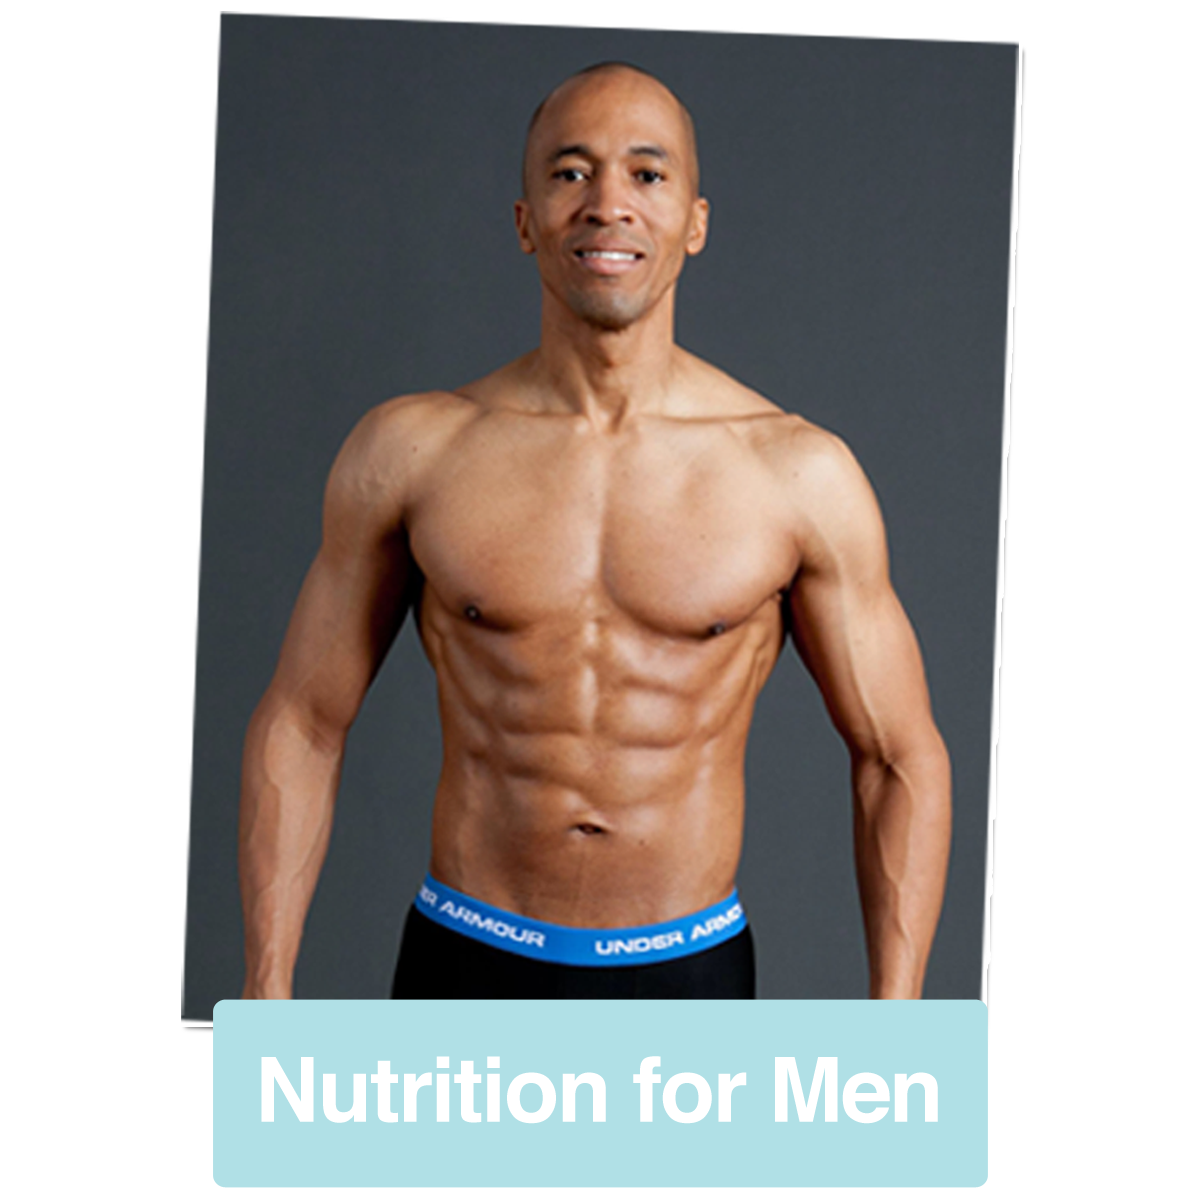 Men's Nutrition Program